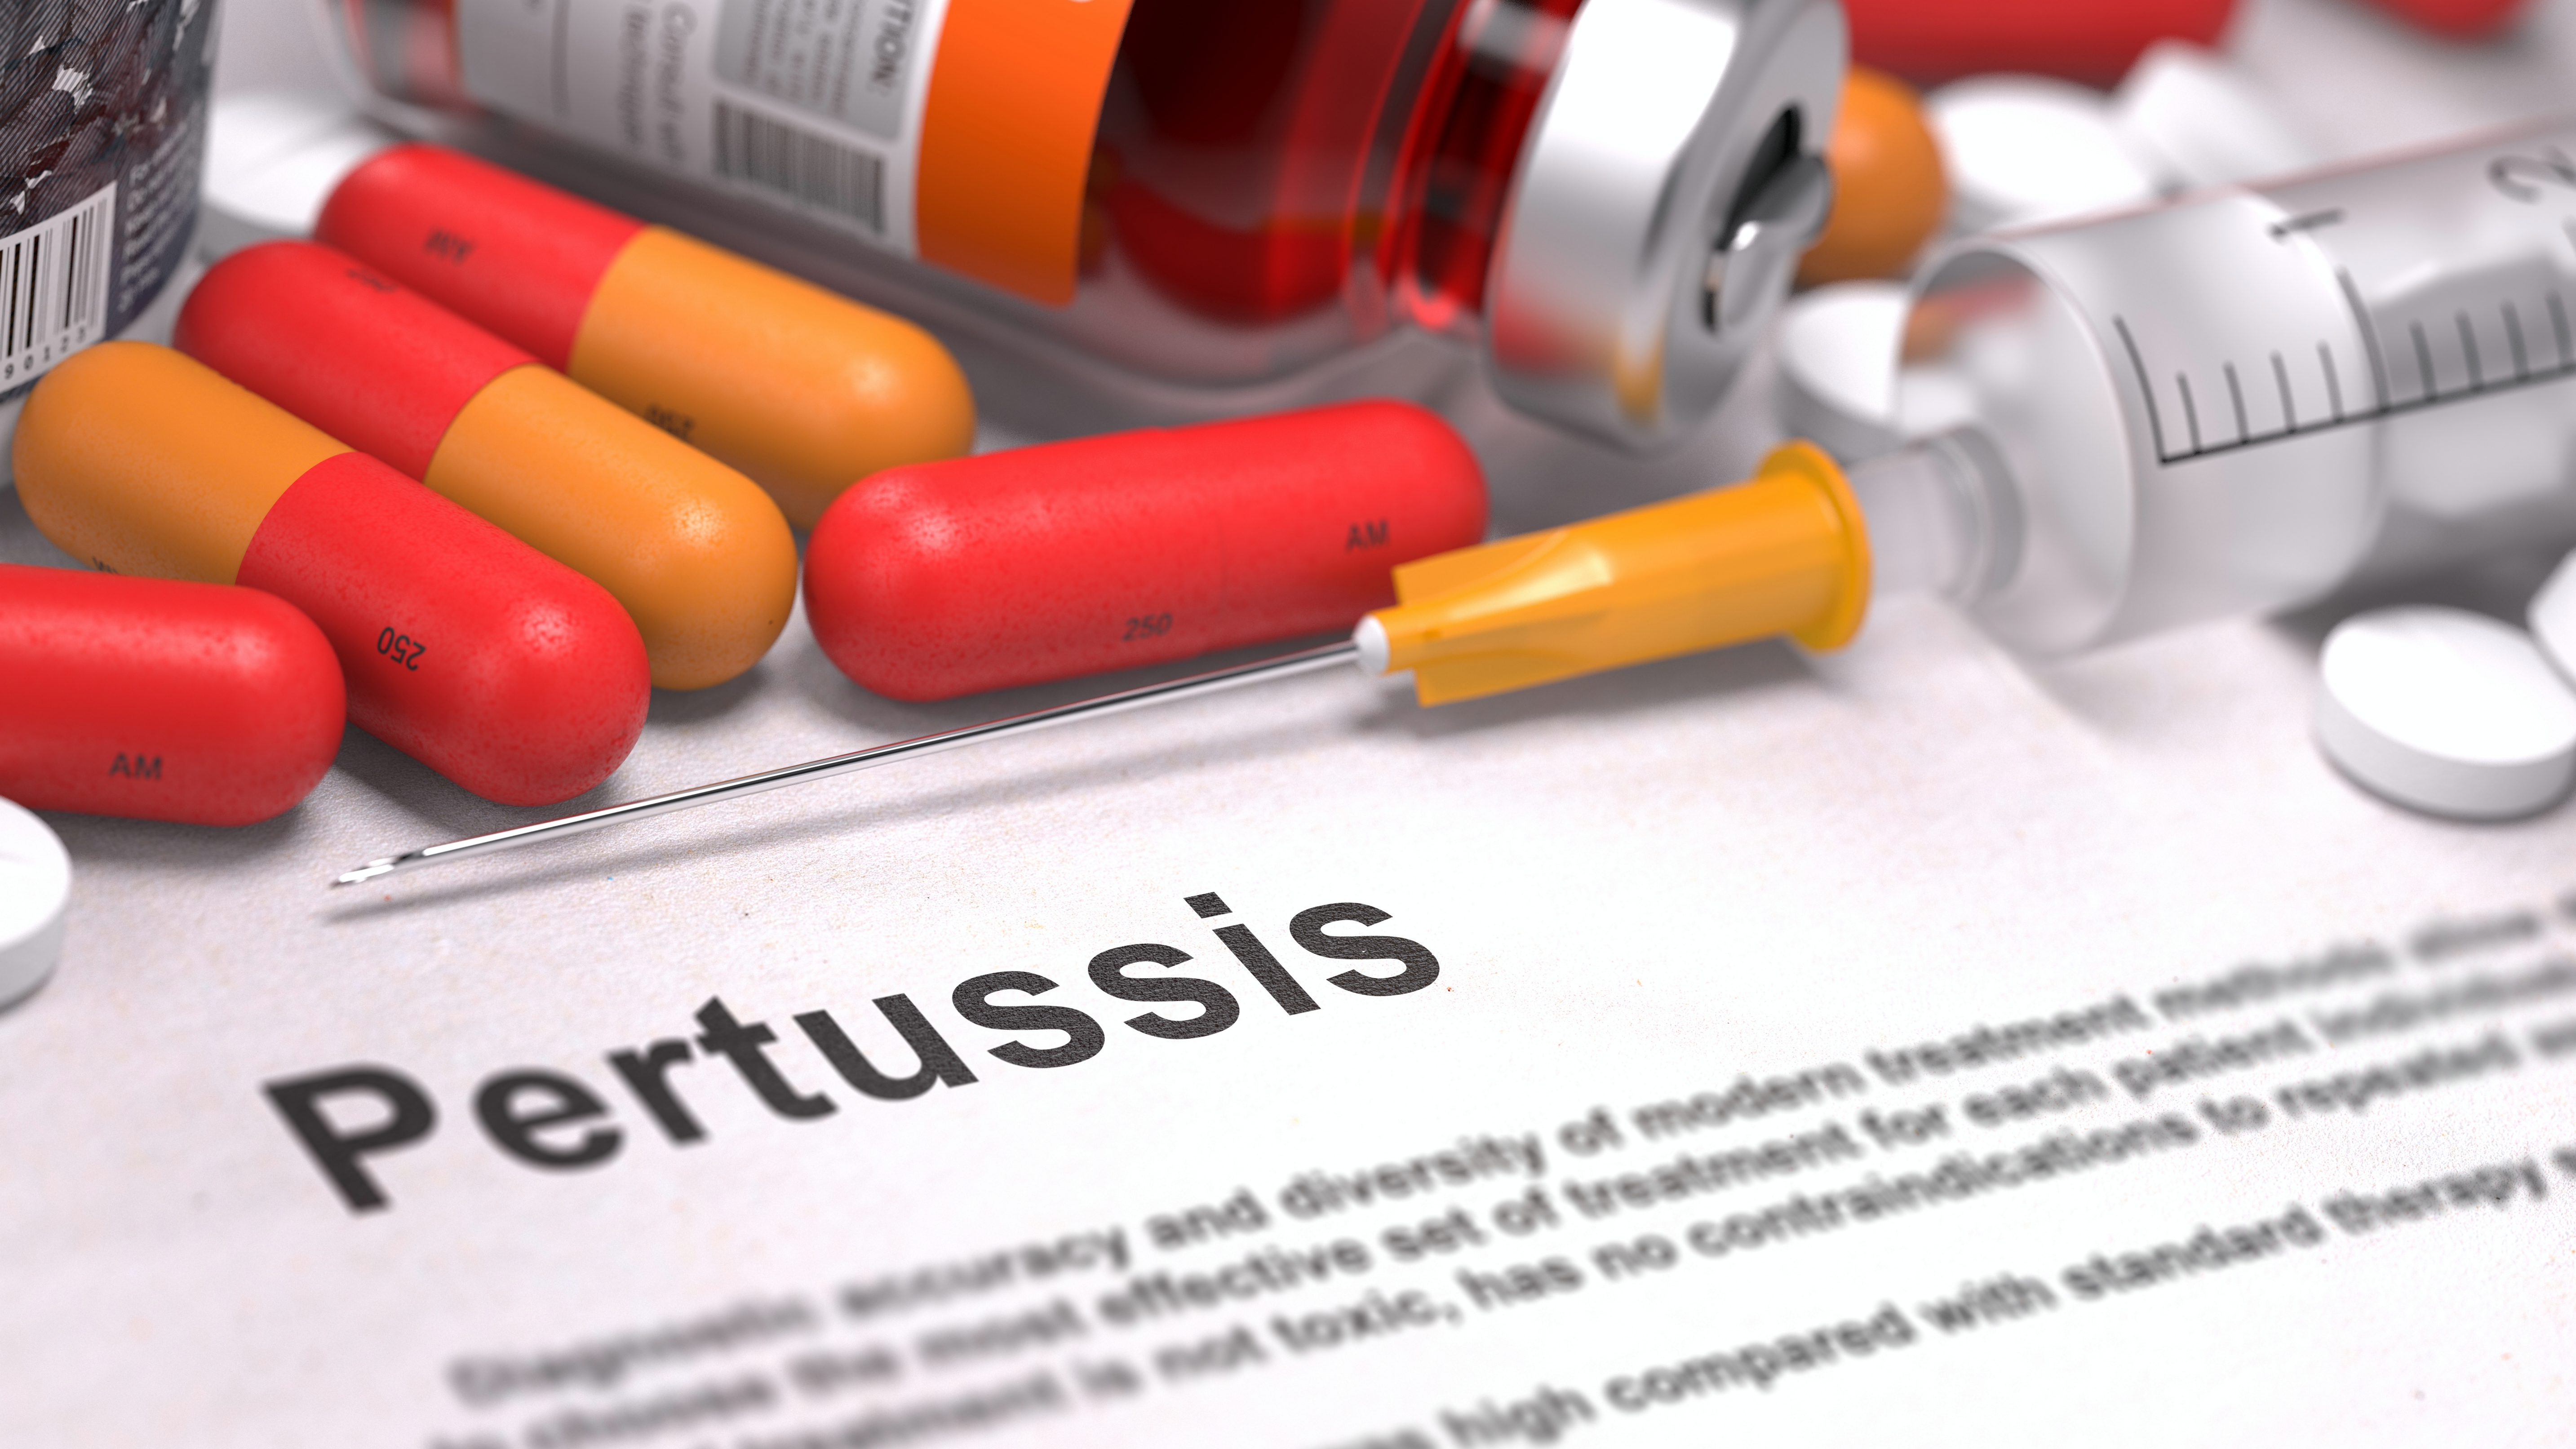 Pertussis - Printed Diagnosis with Red Pills, Injections and Syringe.